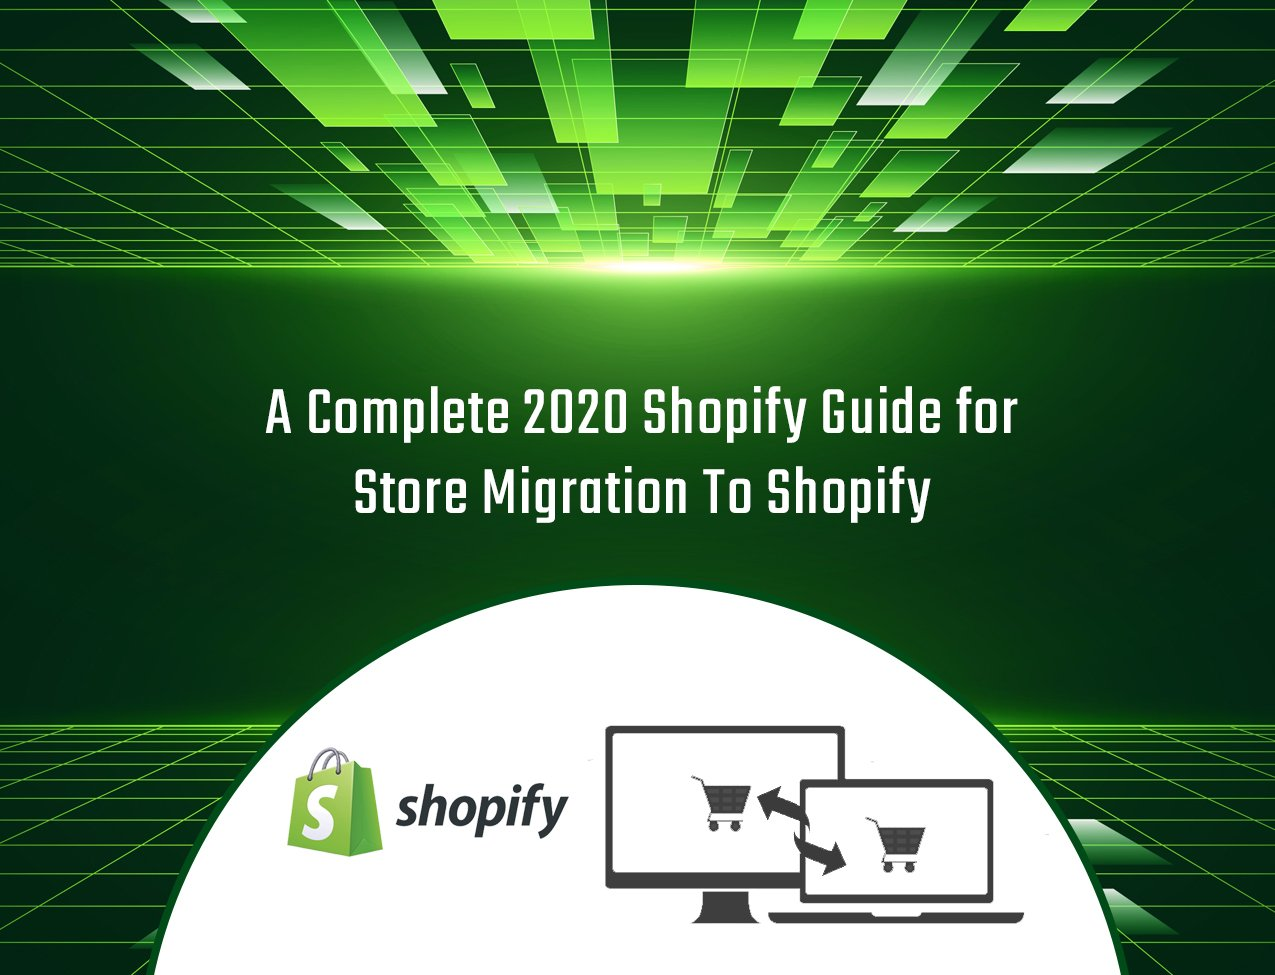 A Complete 2020 Shopify Guide for Store Migration To Shopify